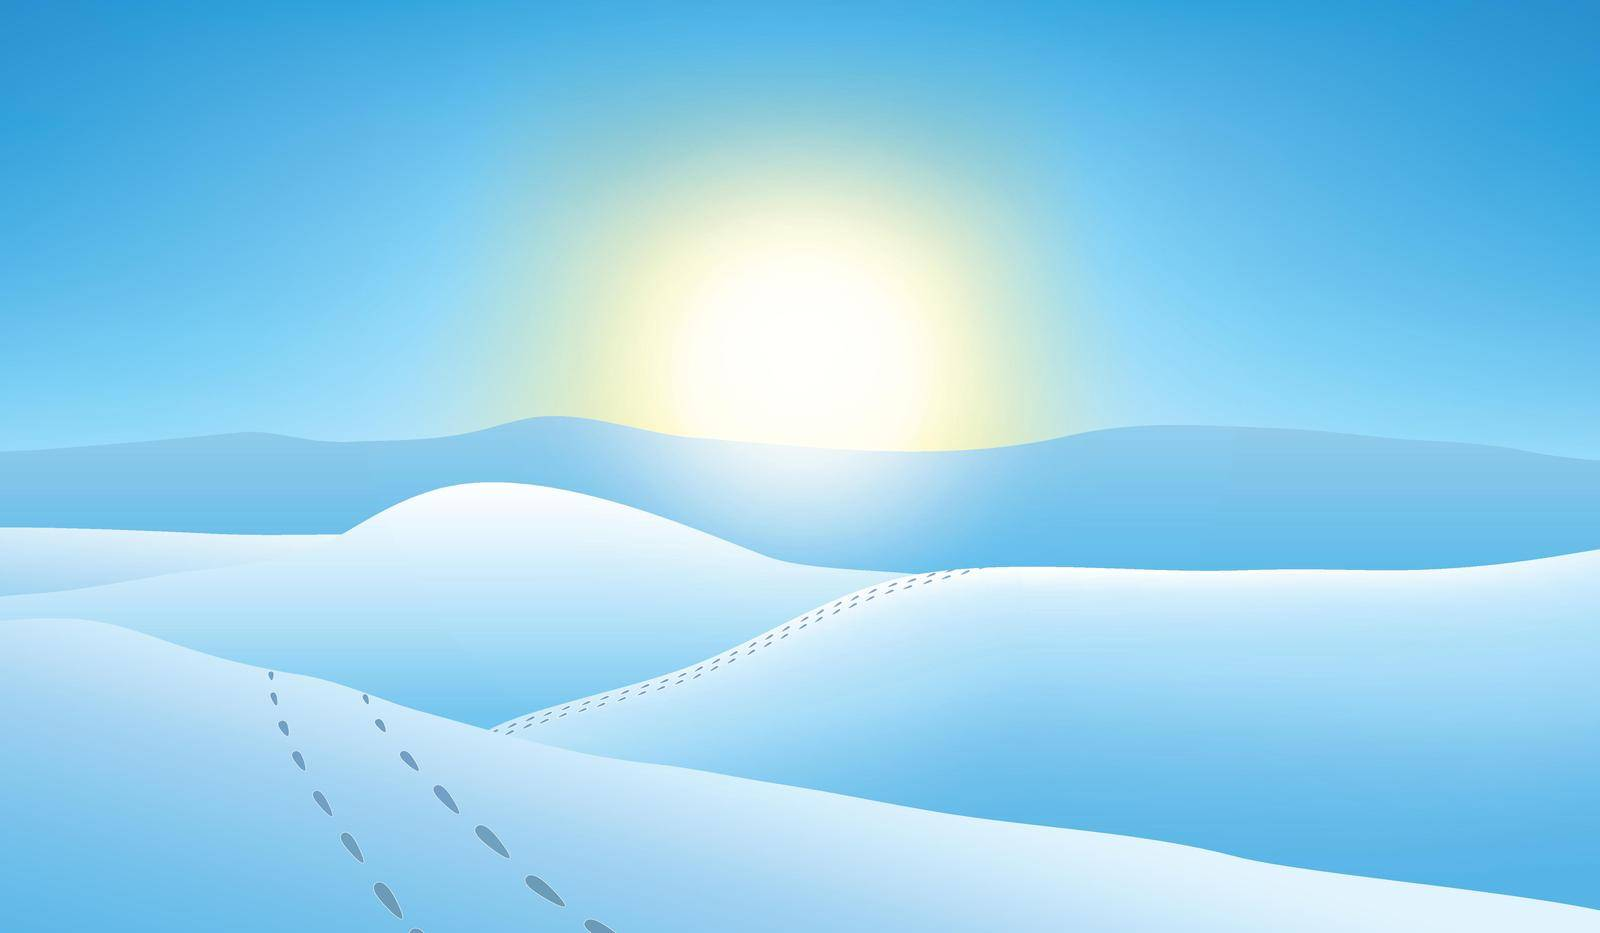 Snowy mountains at sunset. Blue winter landscape vector illustration.